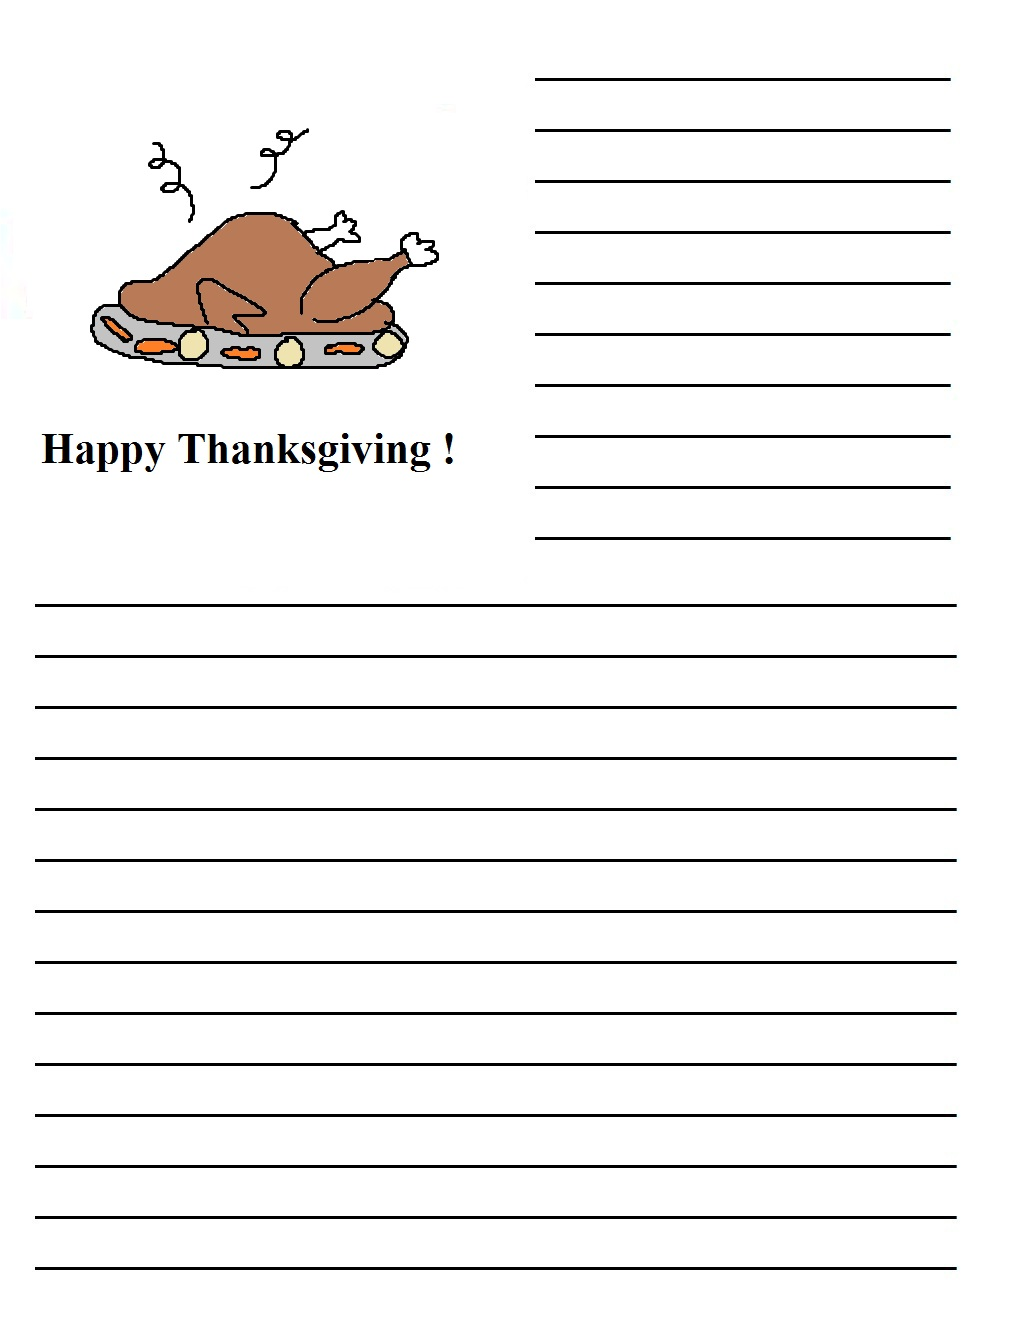 An Essay on Thanksgiving Day for Students, Kids and Children